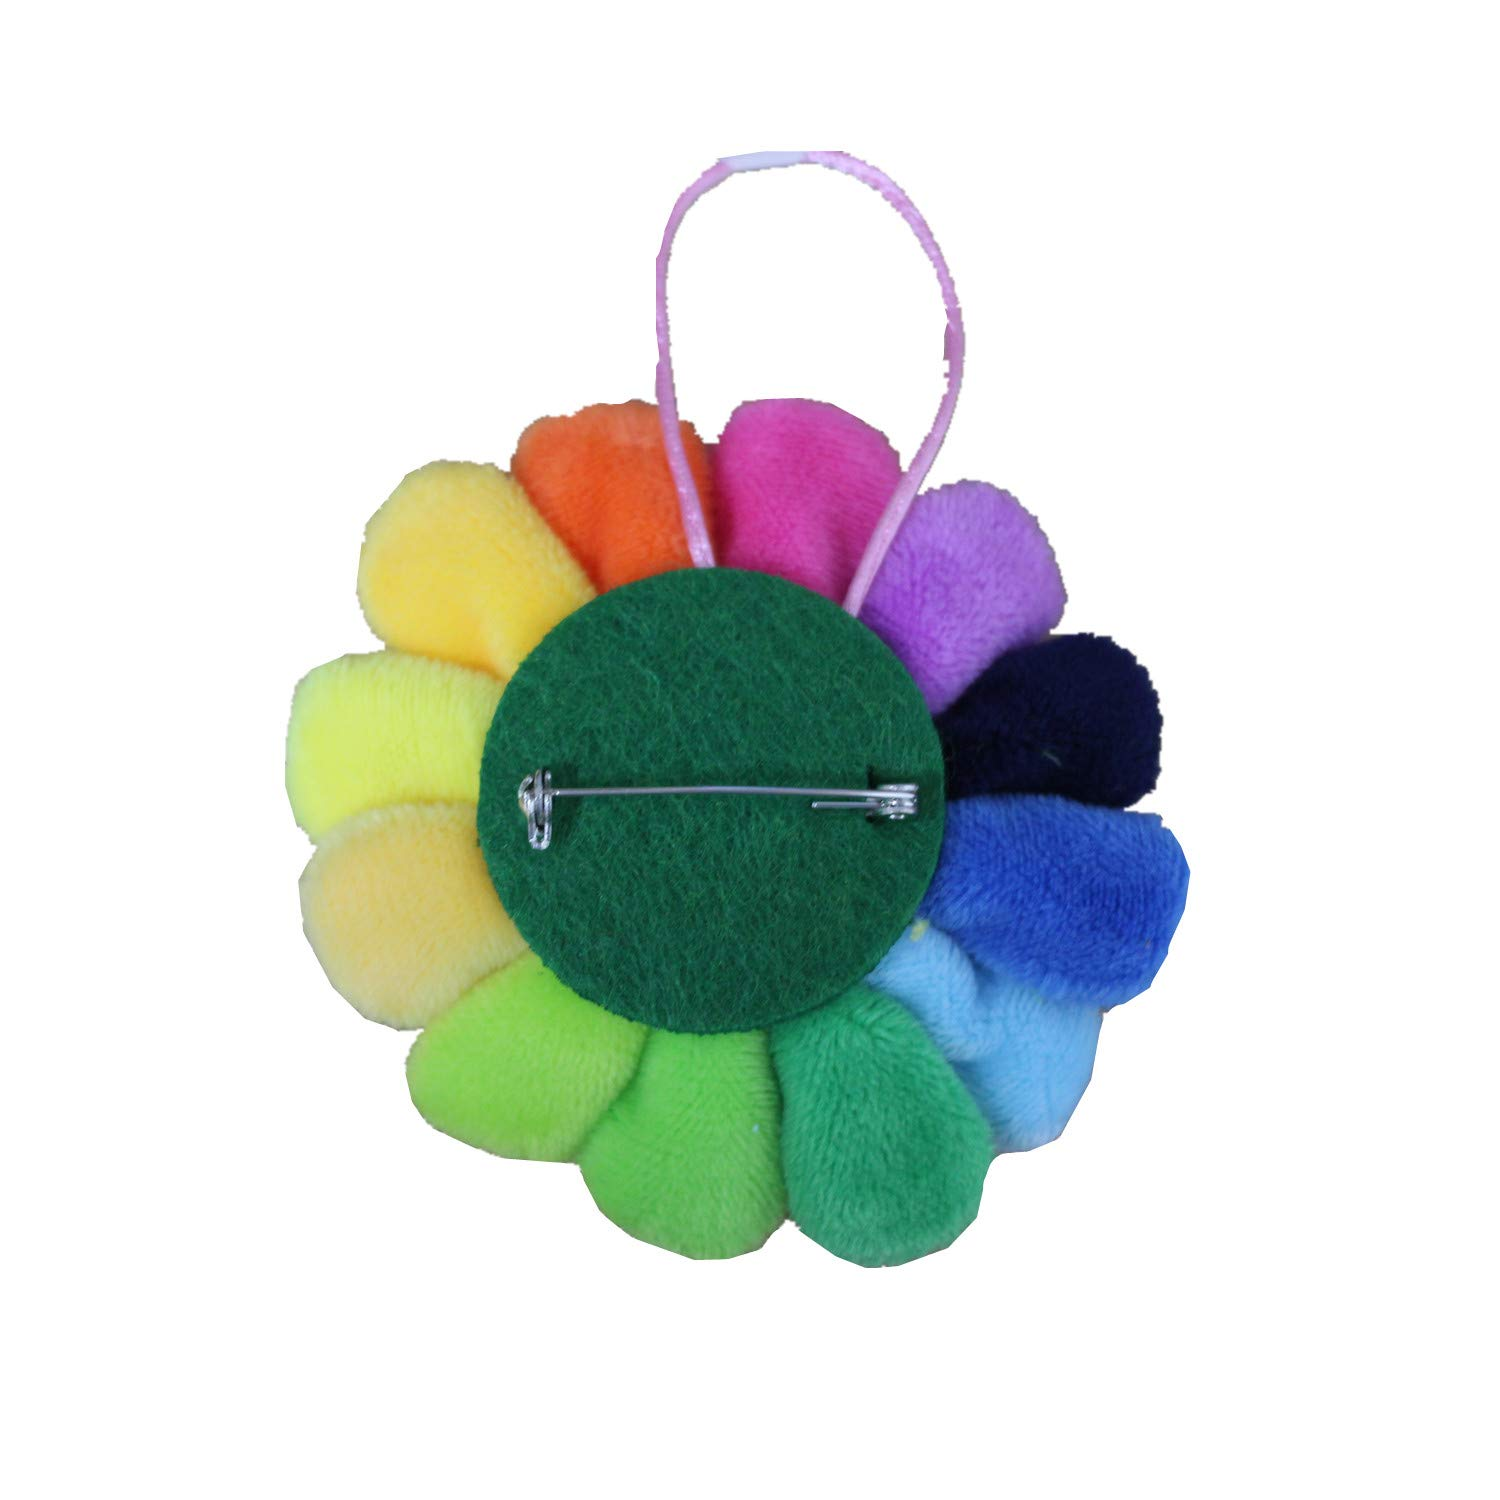 HAN SHENG 6 Pcs Cute Smile Face Rainbow Sunflowers Keychain Brooch Pin Bags Hanging Decration Great for Decoration Backpacks Lanyards Jeans Jackets